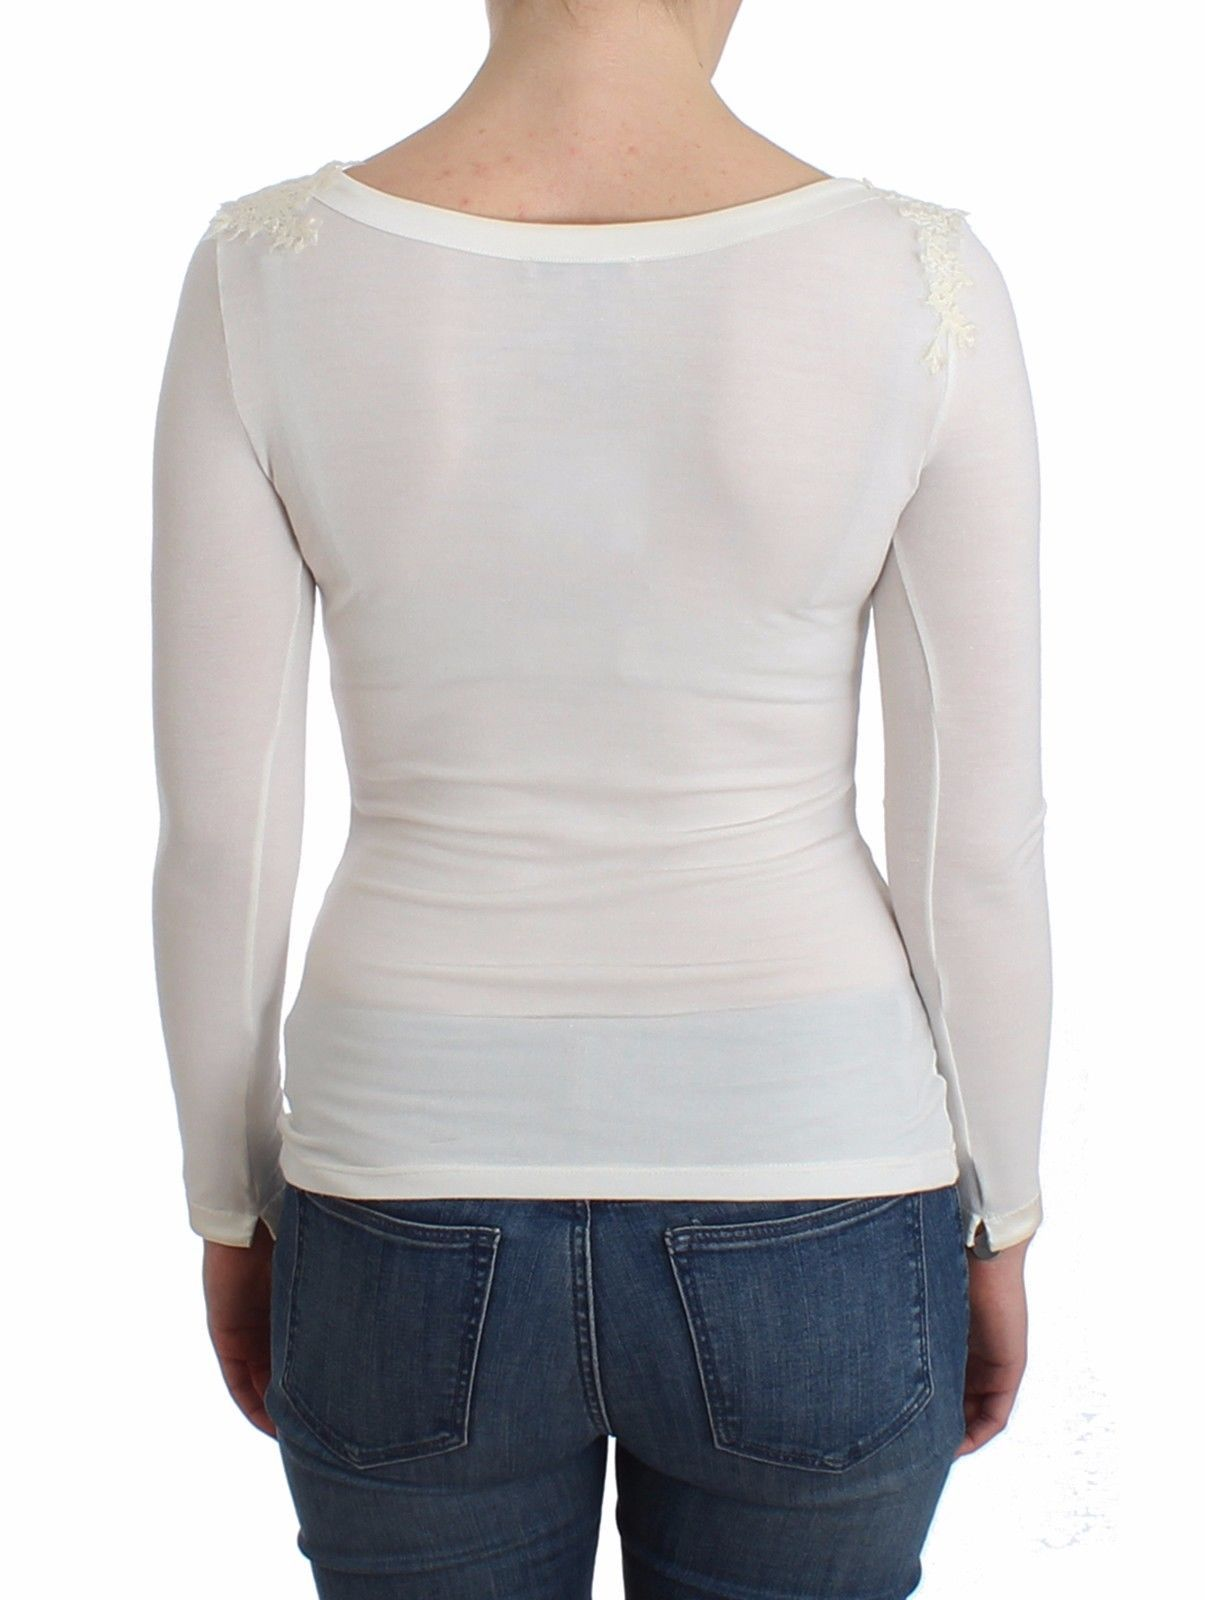 Ermanno Scervino Lingerie White Top Blouse Jumper Lace Rayon